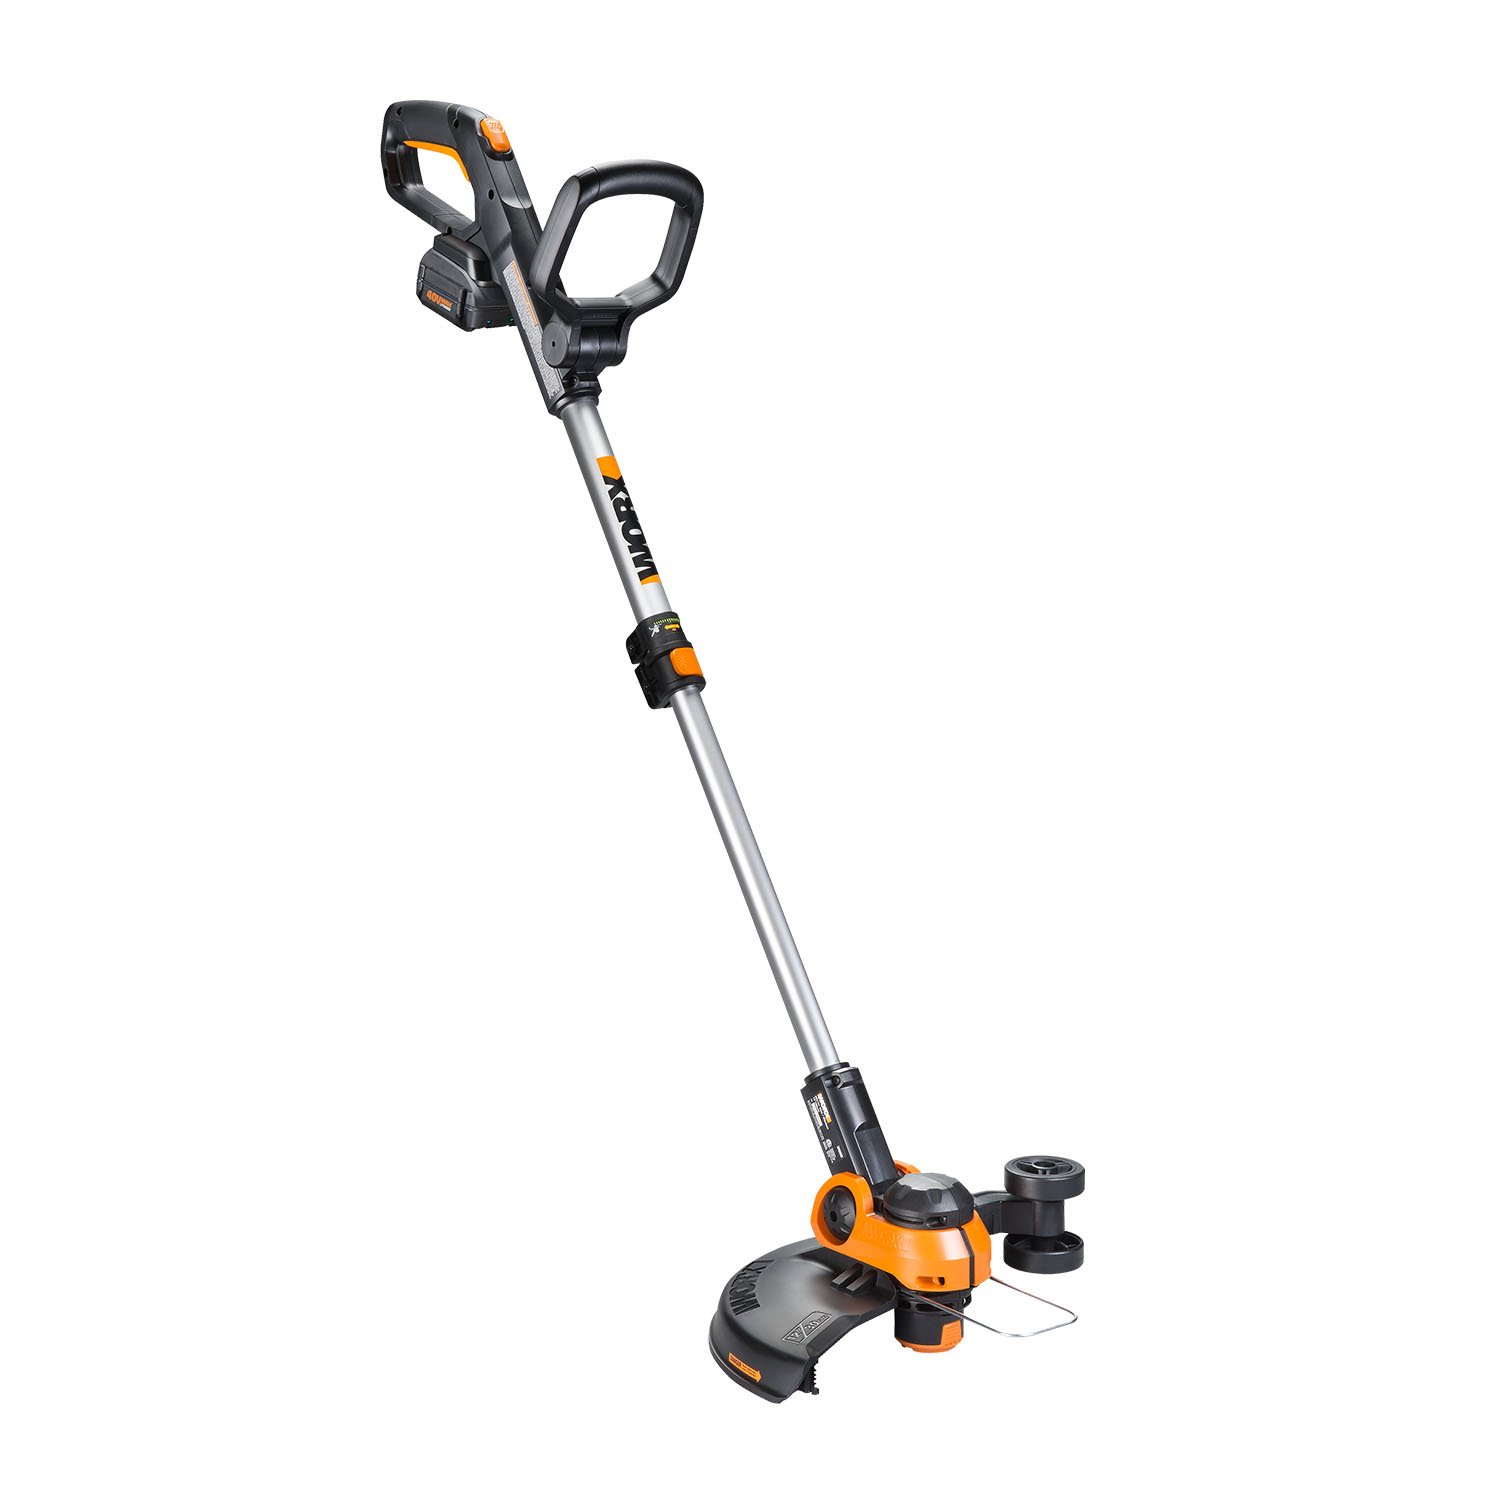 Worx WG180 40 Volt GT3.0 Cordless Grass Trimmer with Battery and Charger Included Trimer, orange and Black